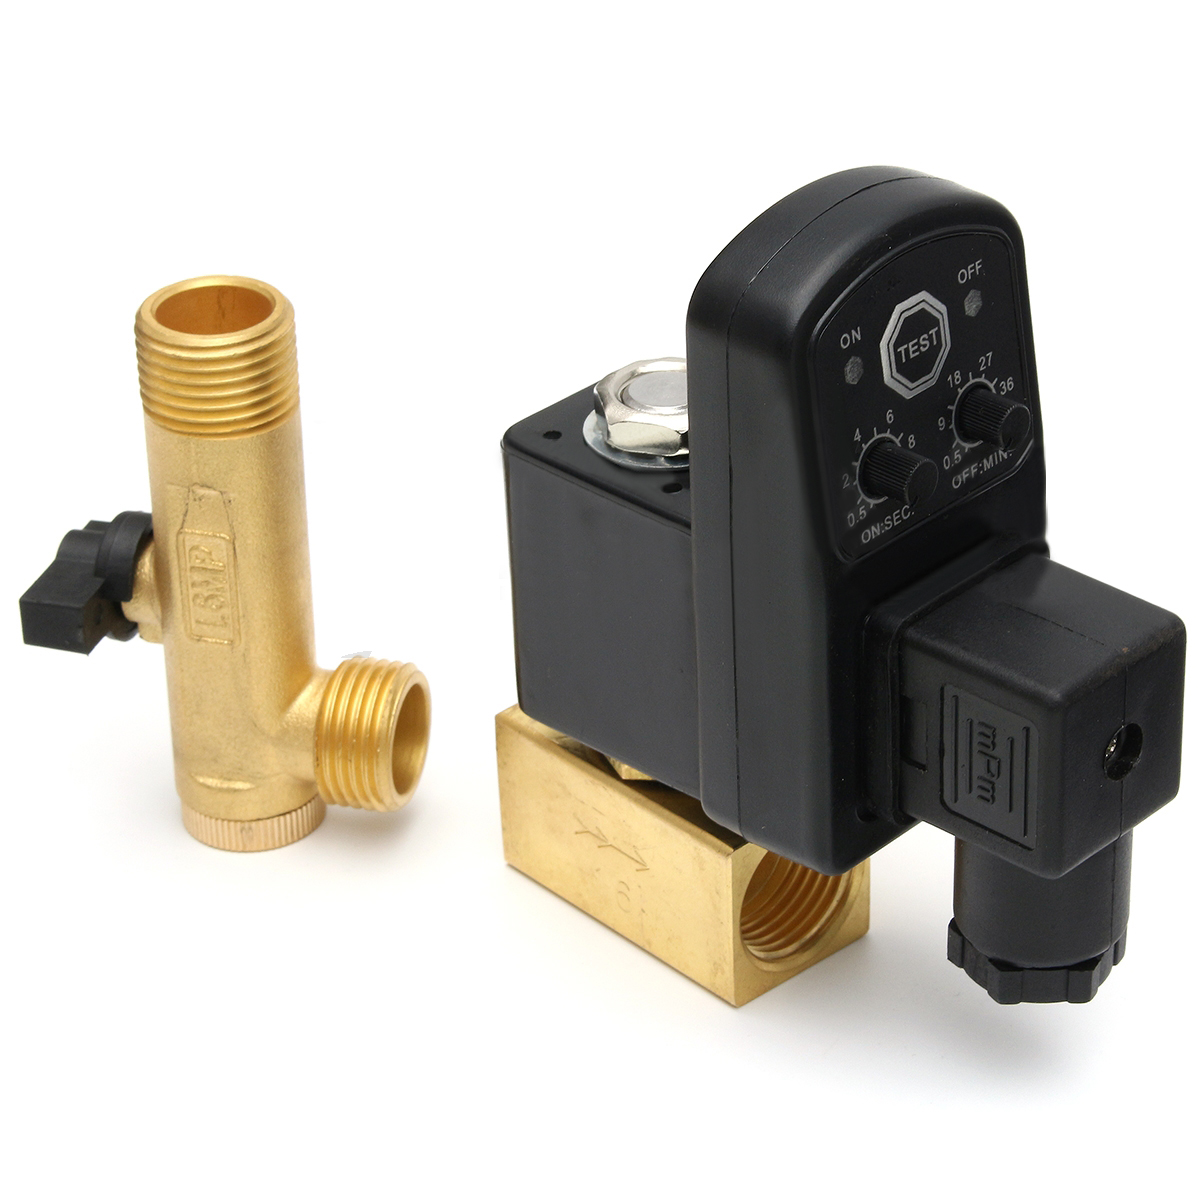 1pc 1/2 Electronic Timed Drain Valve AC110V/AC220V Air Compressor Cylinders Gas Tank Automatic 2-way Drain Valves Mayitr best nr 0200 2 way electronic auto timer compressor drain valve 220v ac 1 2 orifice 3mm brass flow drainer